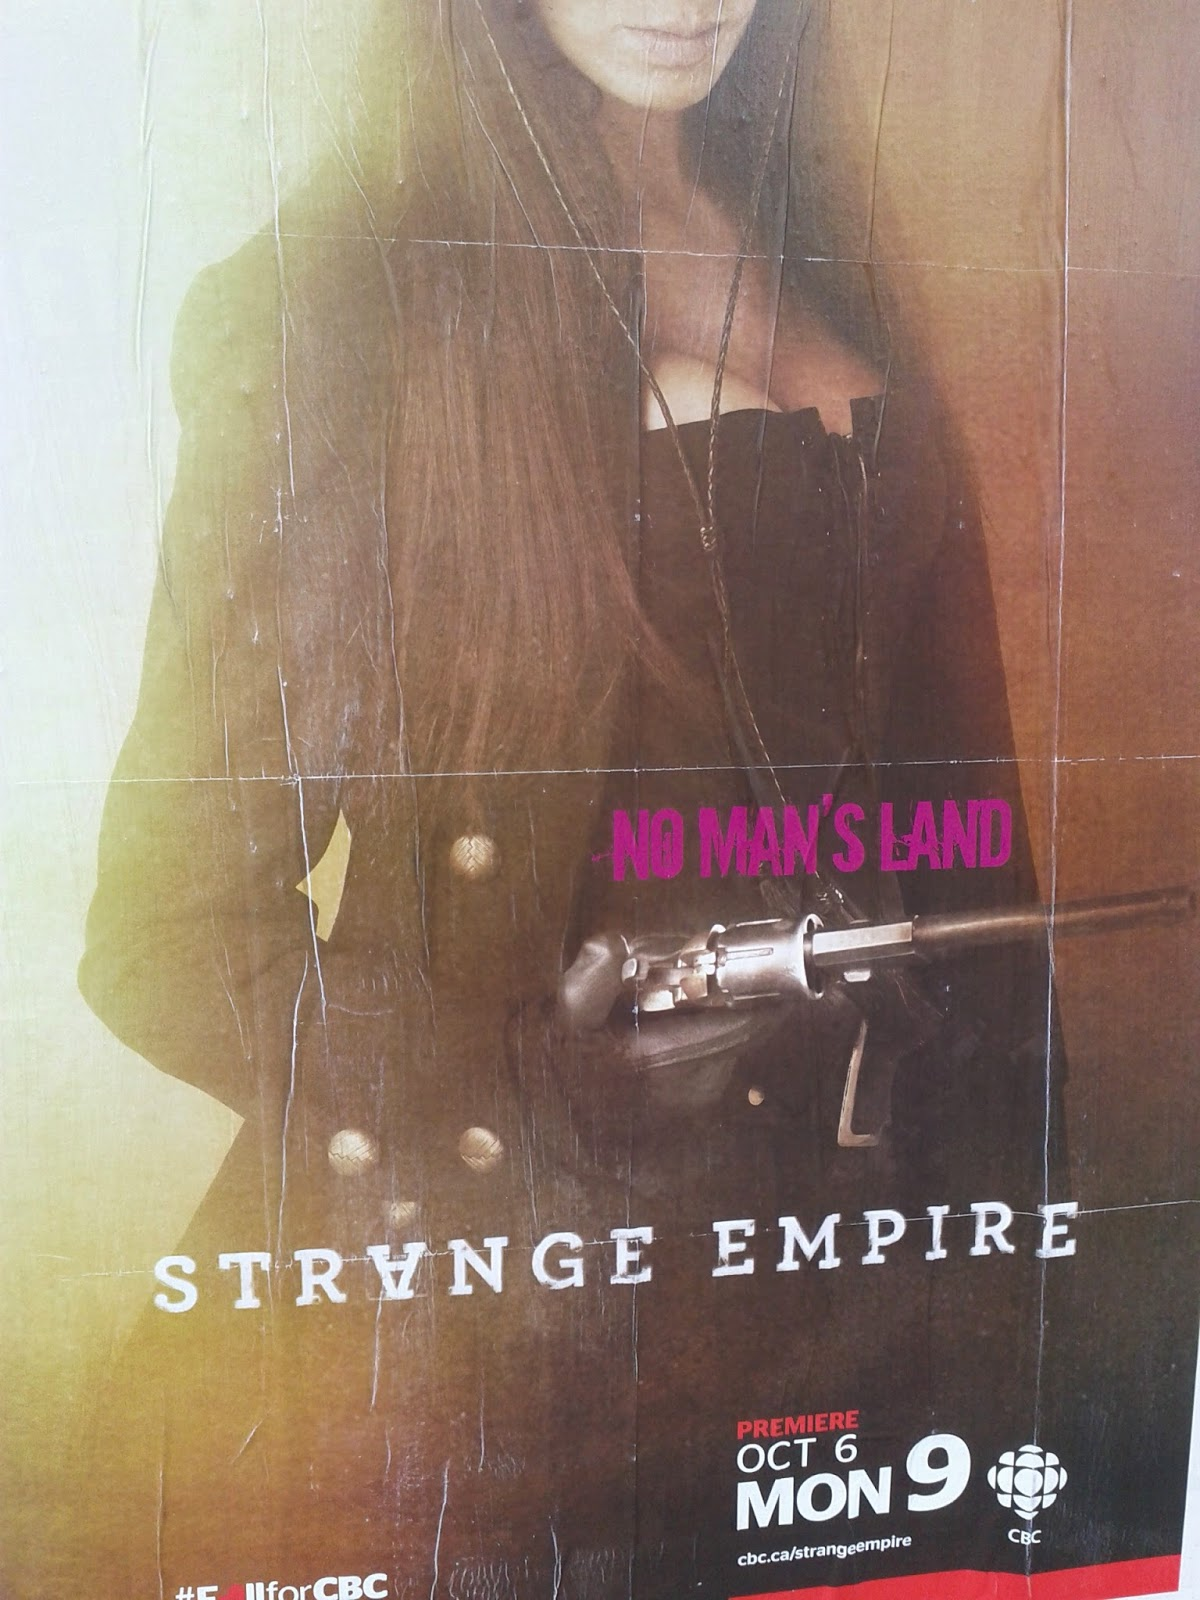 No Man's Land, Strange Empire